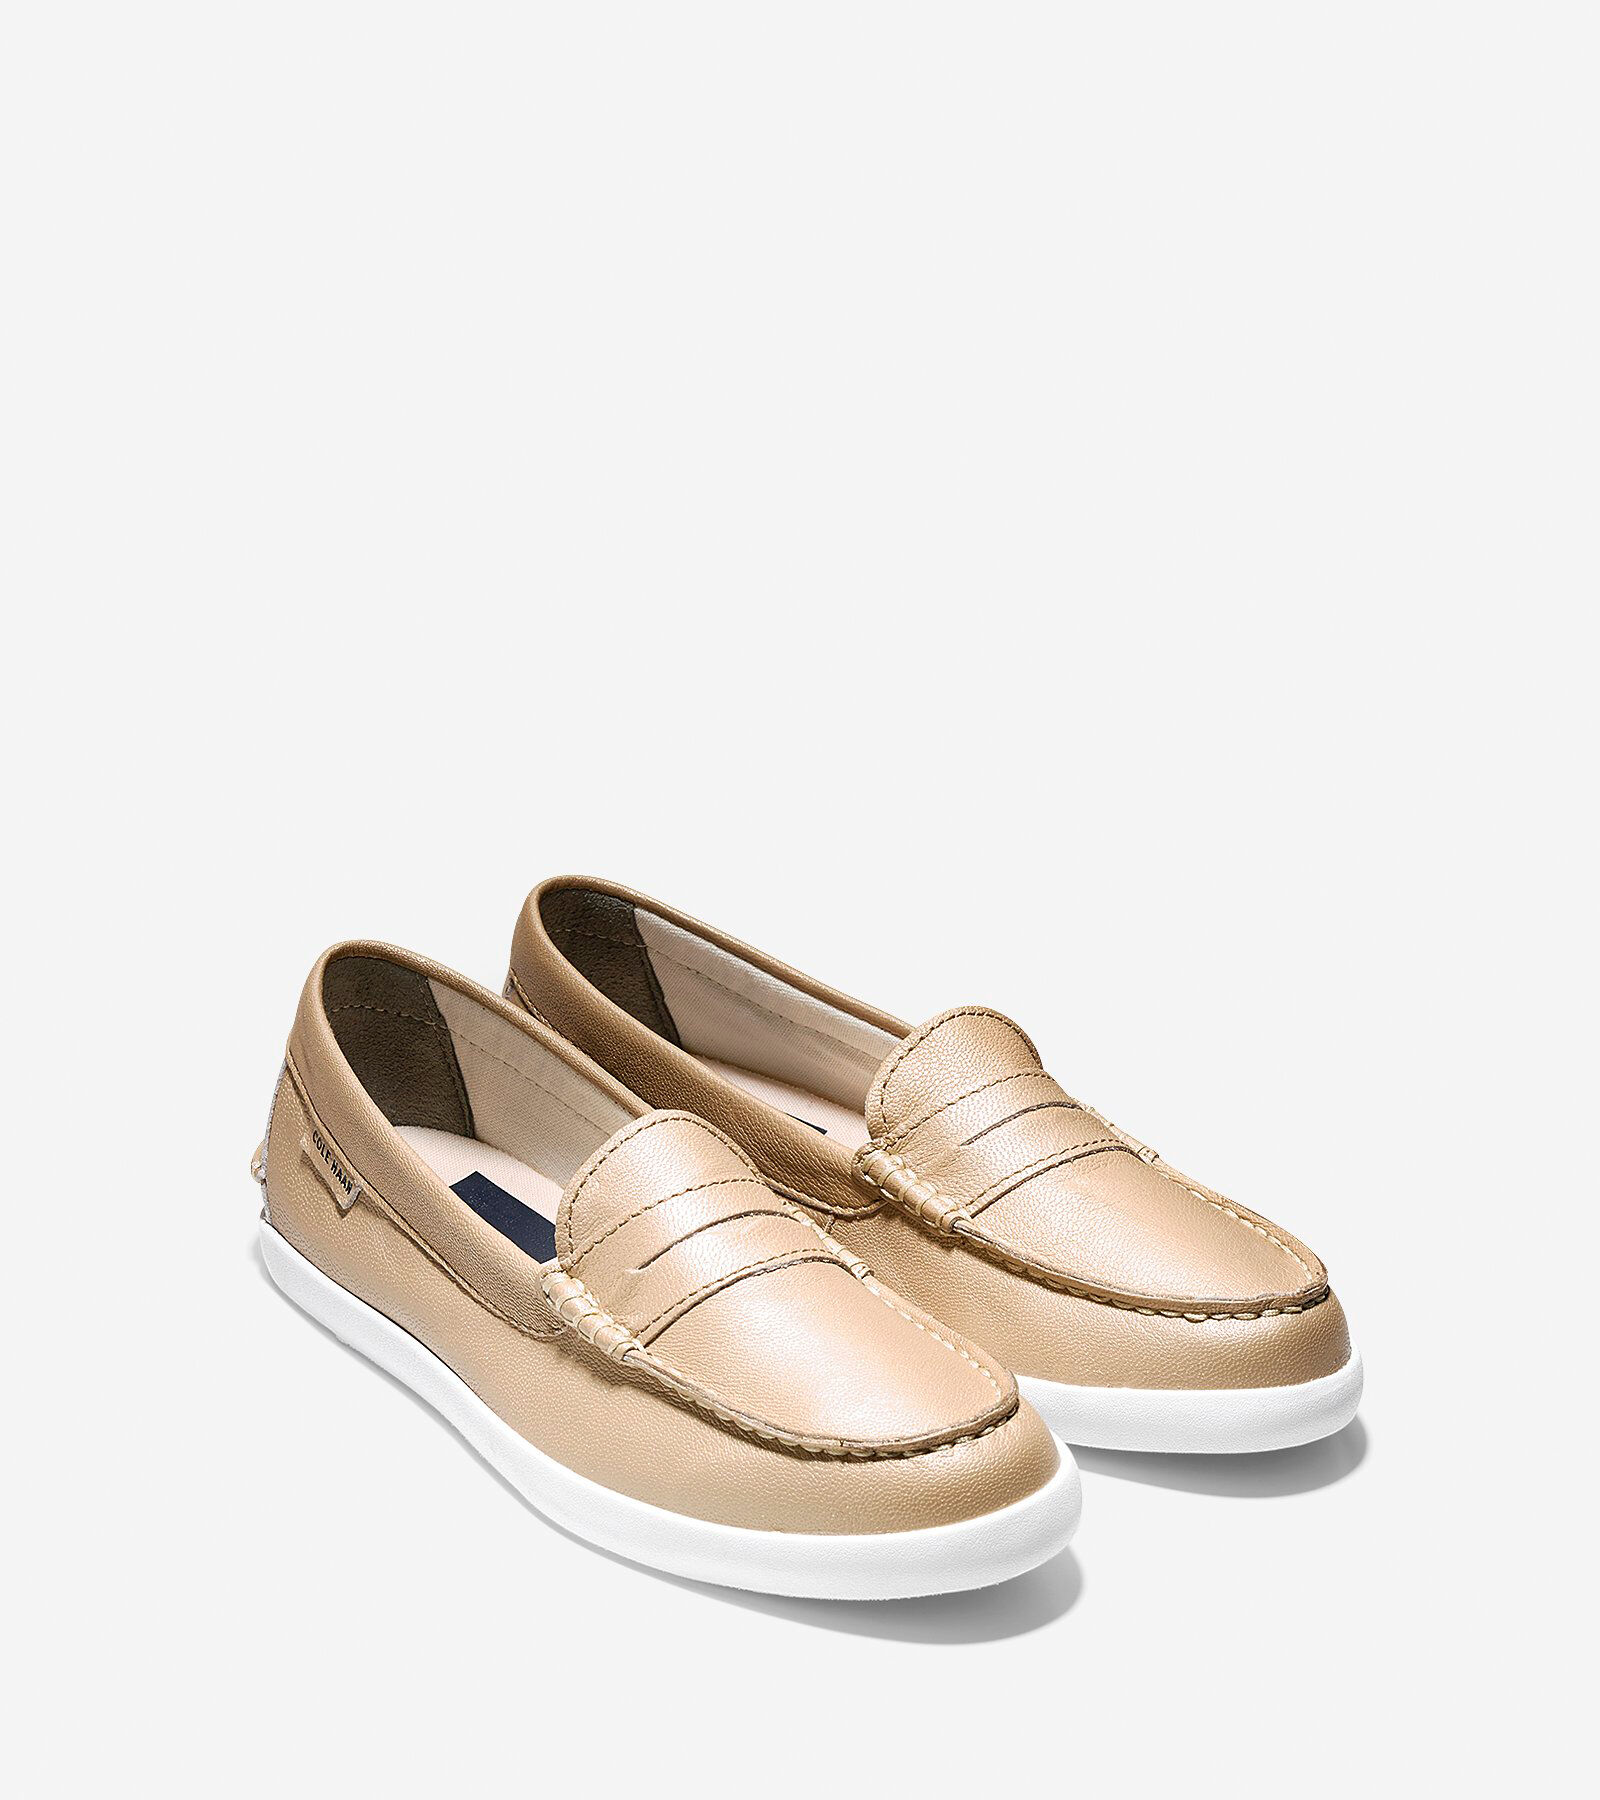 ... Women's Nantucket Loafer; Women's Nantucket Loafer. #colehaan